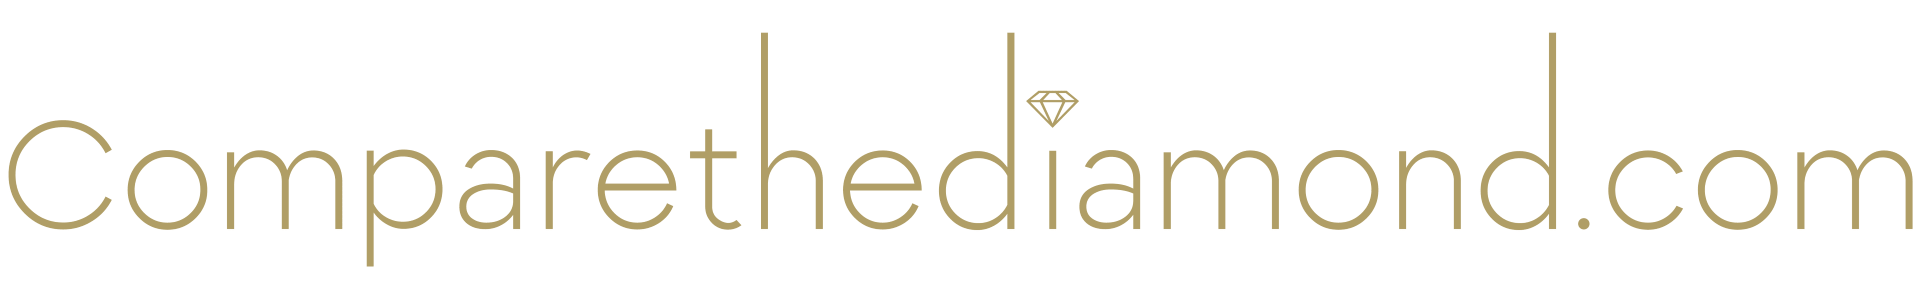 ComparetheDiamond.com